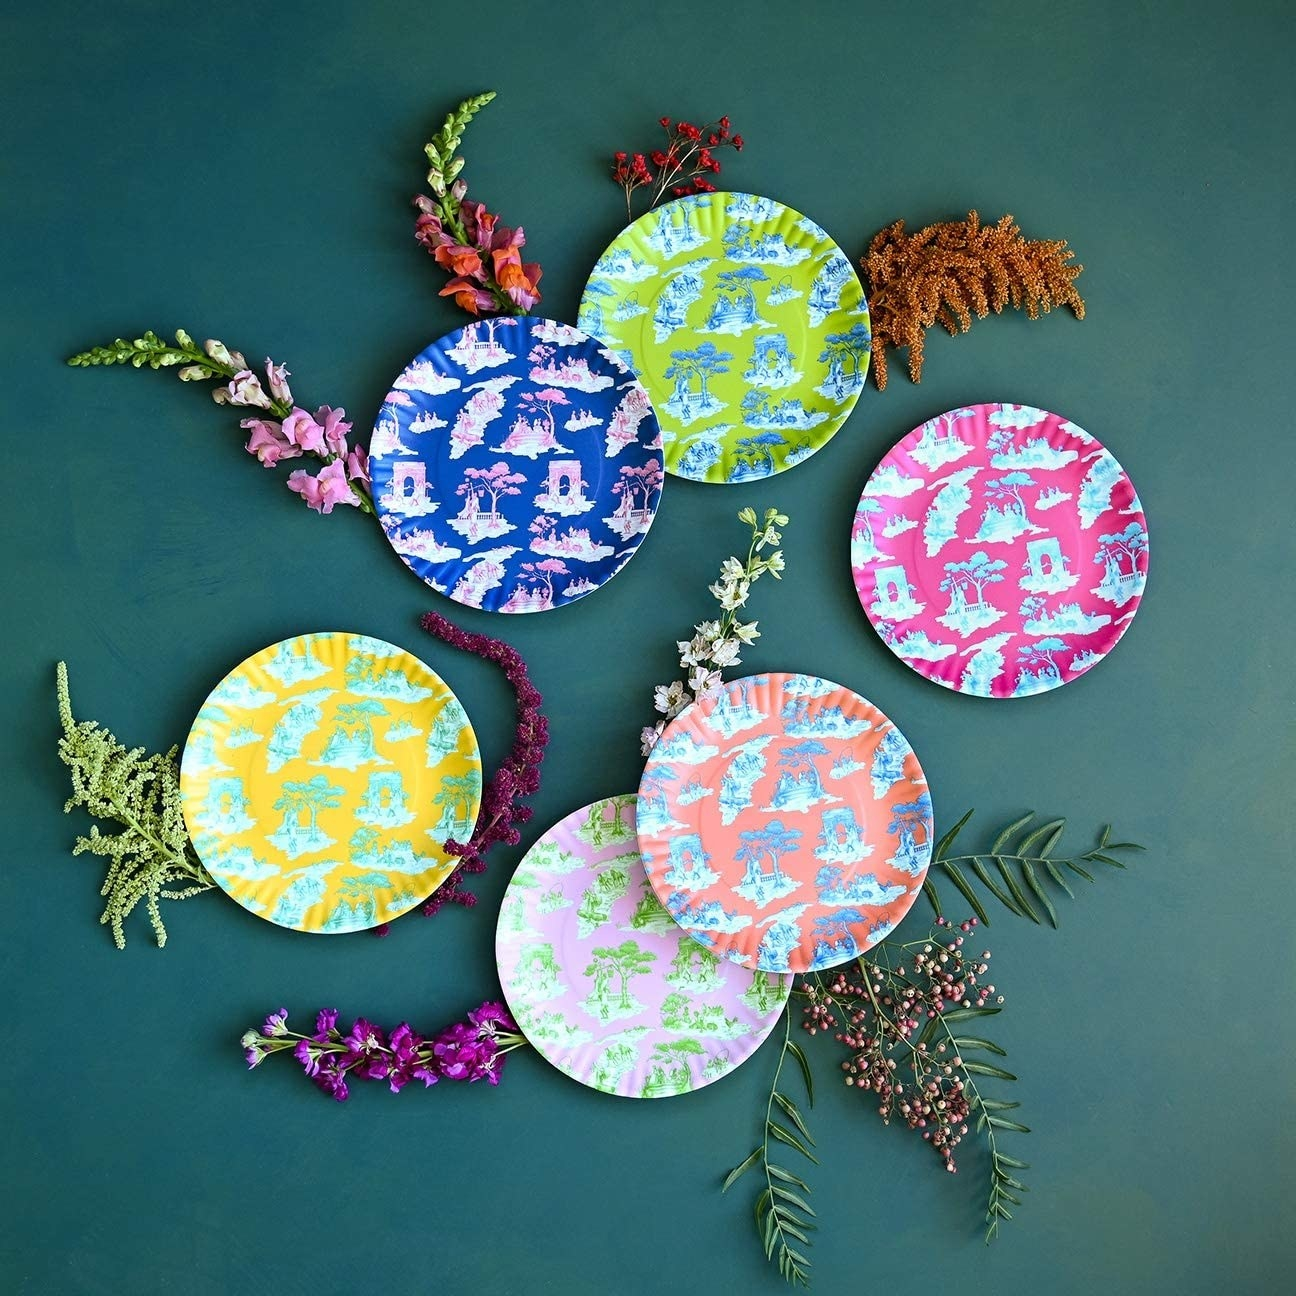 The six plates each in a different bright color